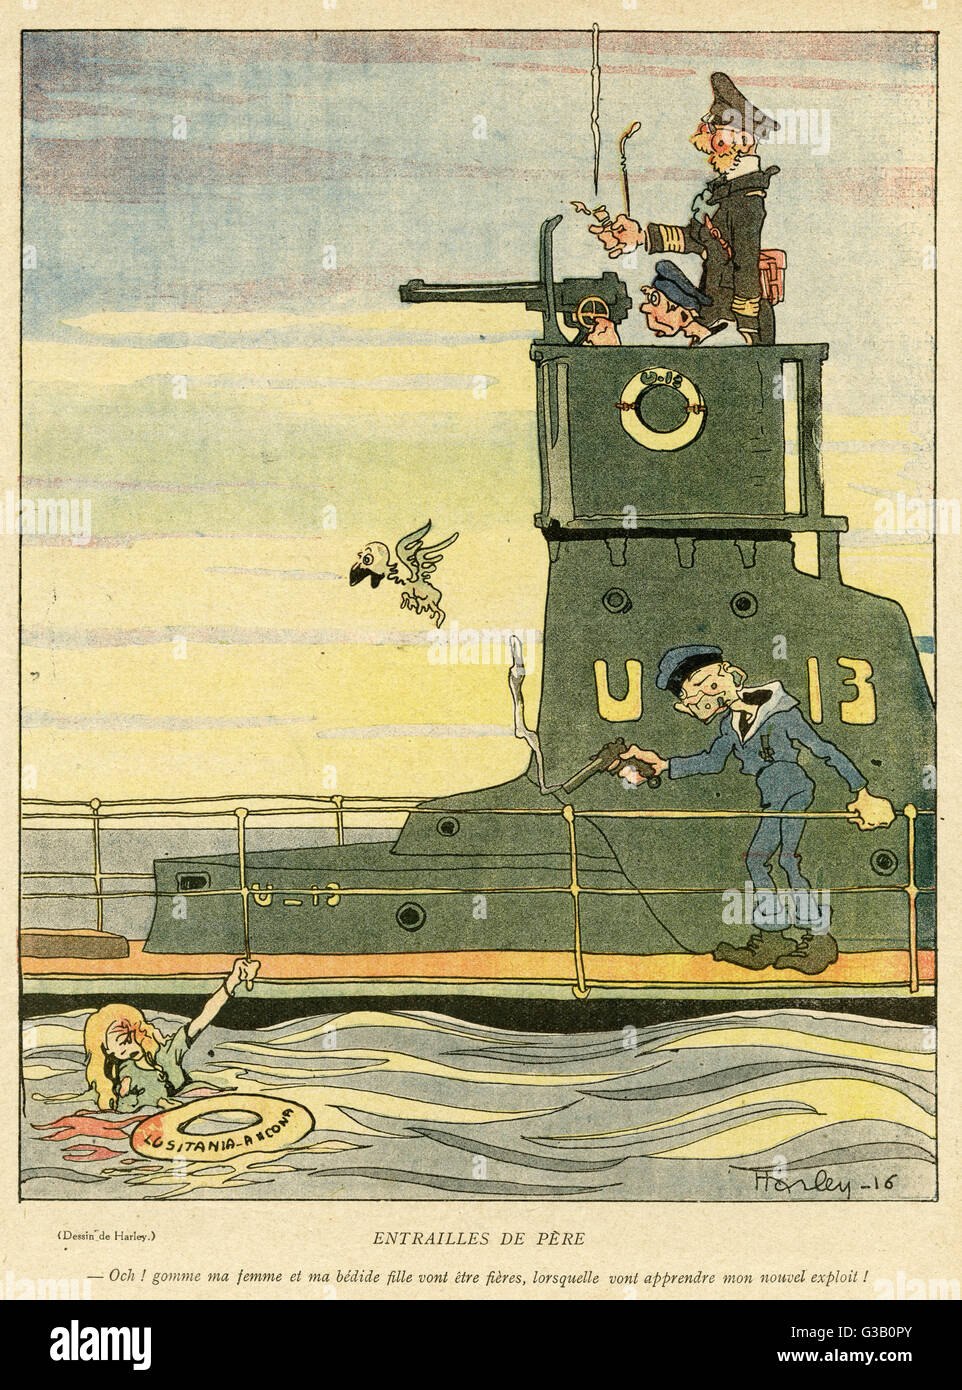 Cartoon, The Father's Guts.  A German U-boat crewman shoots a female survivor of the Lusitania, saying: How - Stock Image